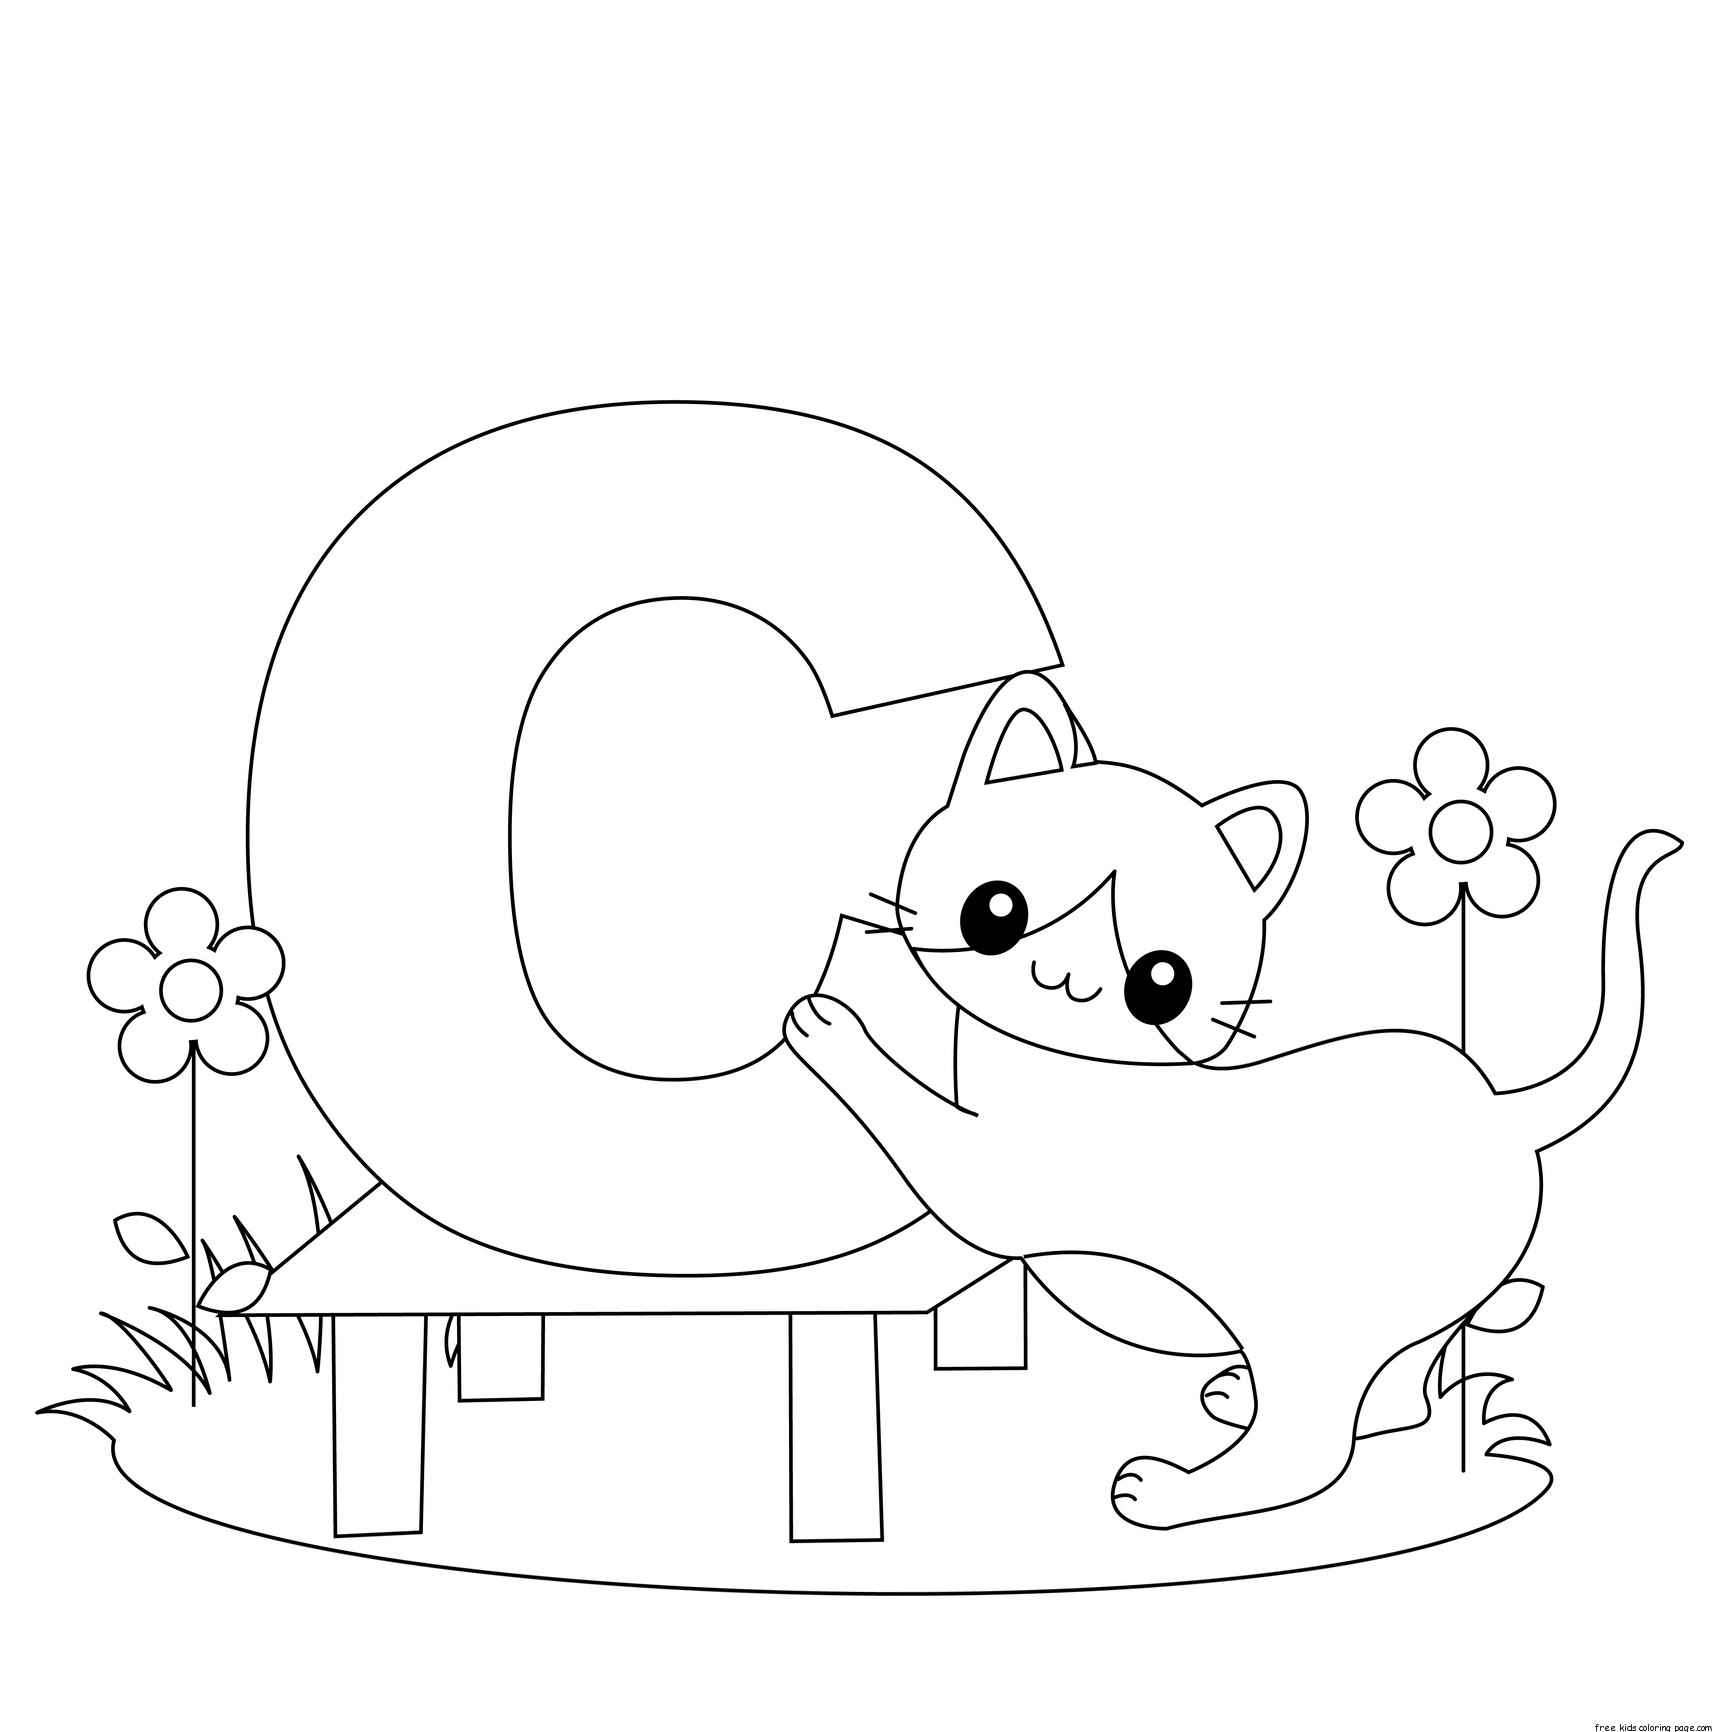 1732x1732 Unlimited Letter C Coloring Sheets Printable